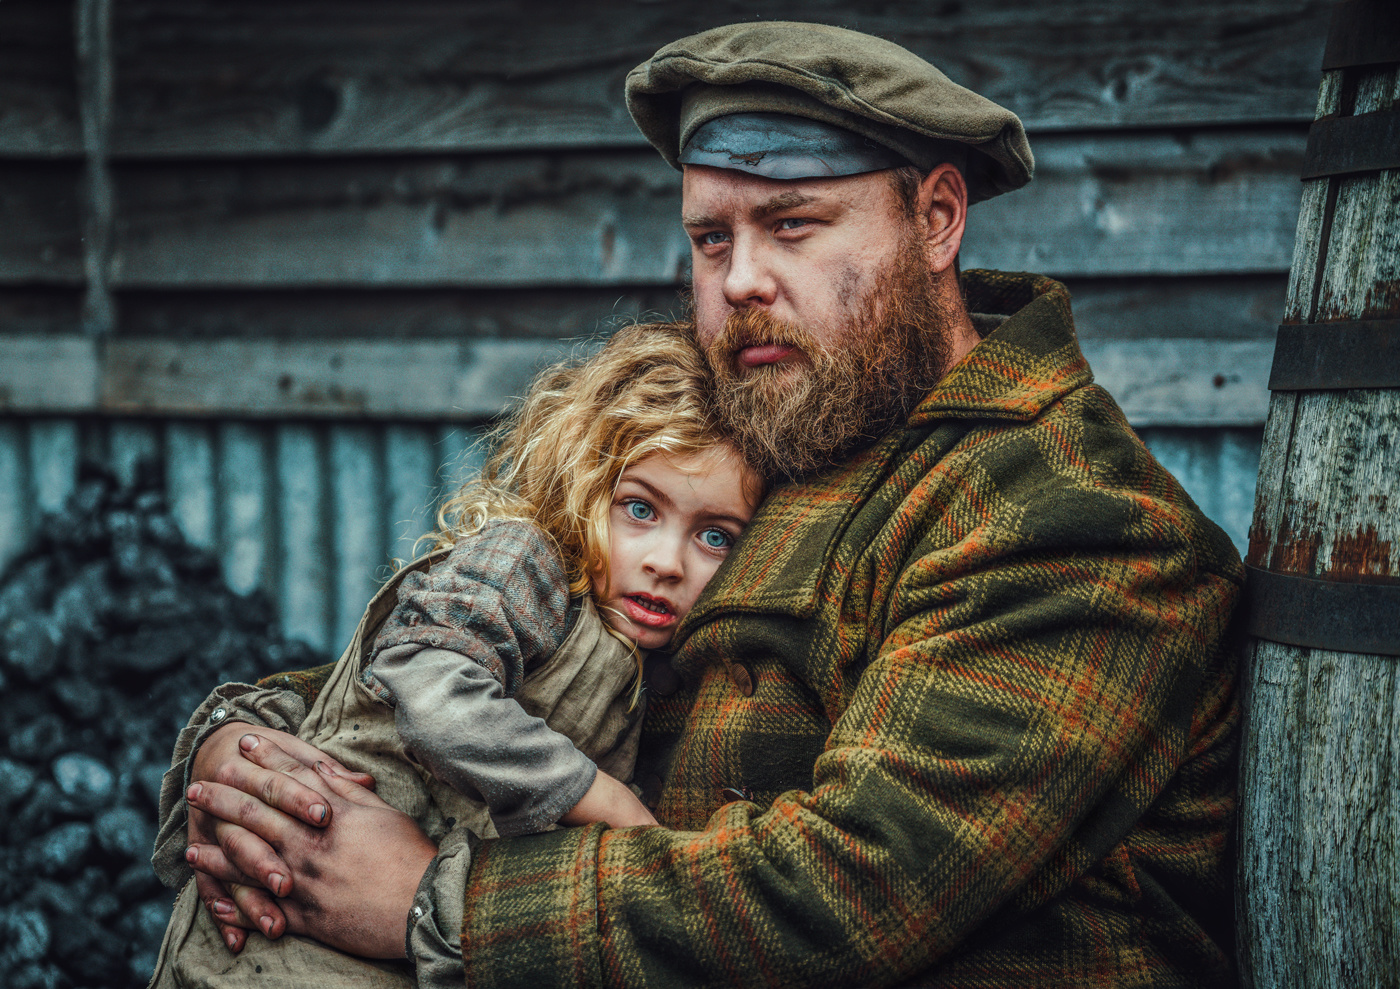 Father and Daughter by matthew jones